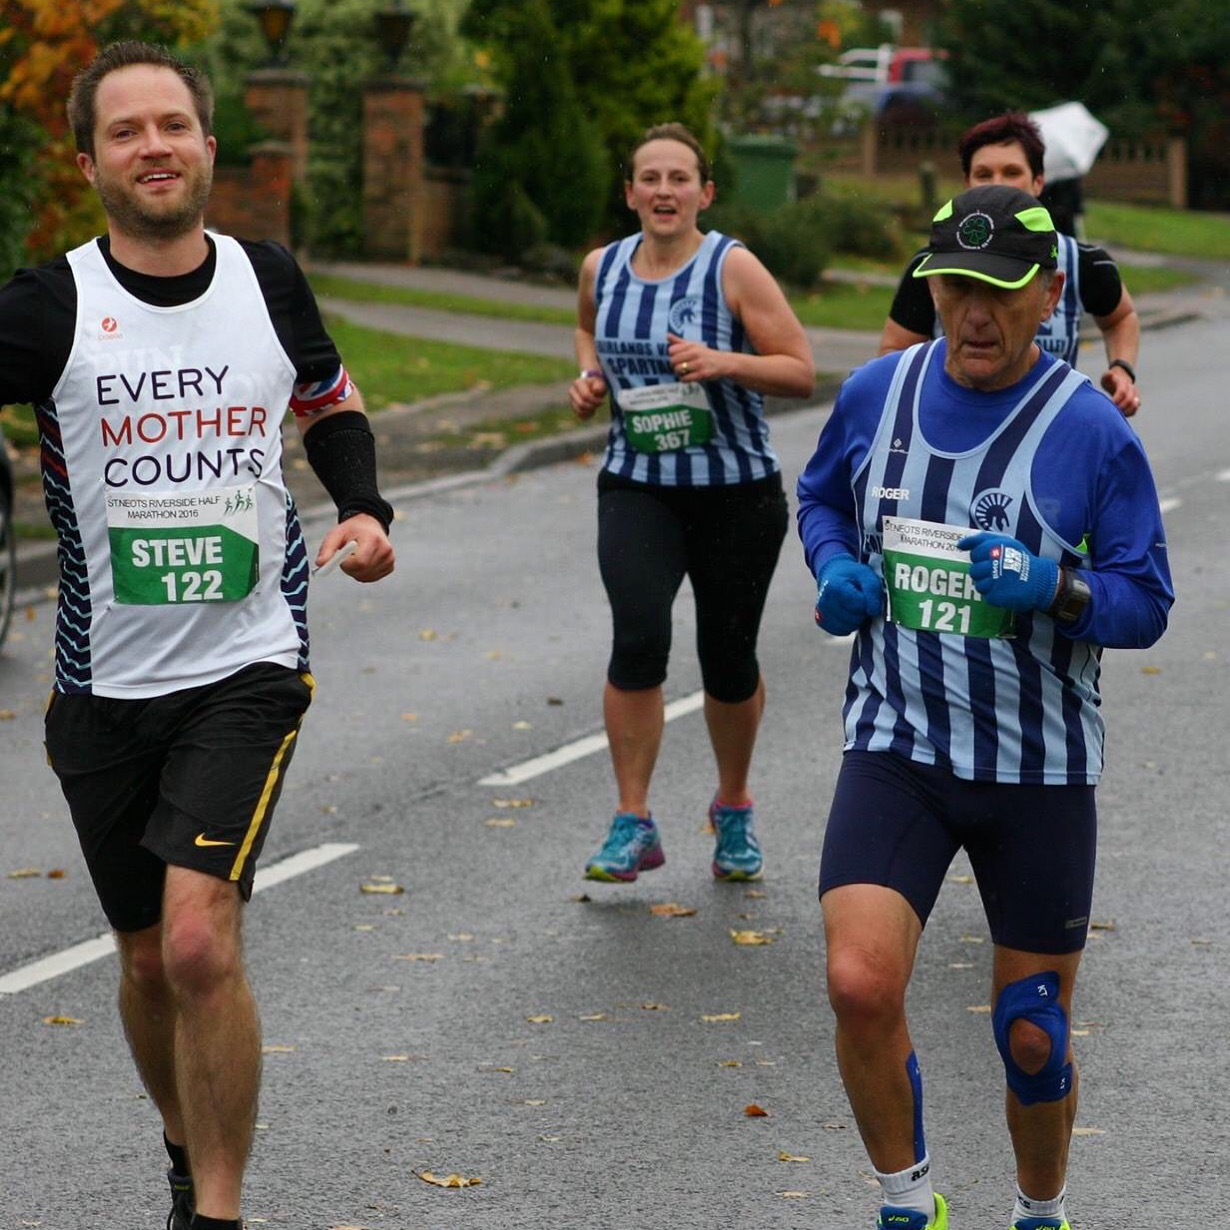 2017 BMW Berlin Marathon- Team Every Mother Counts Photo